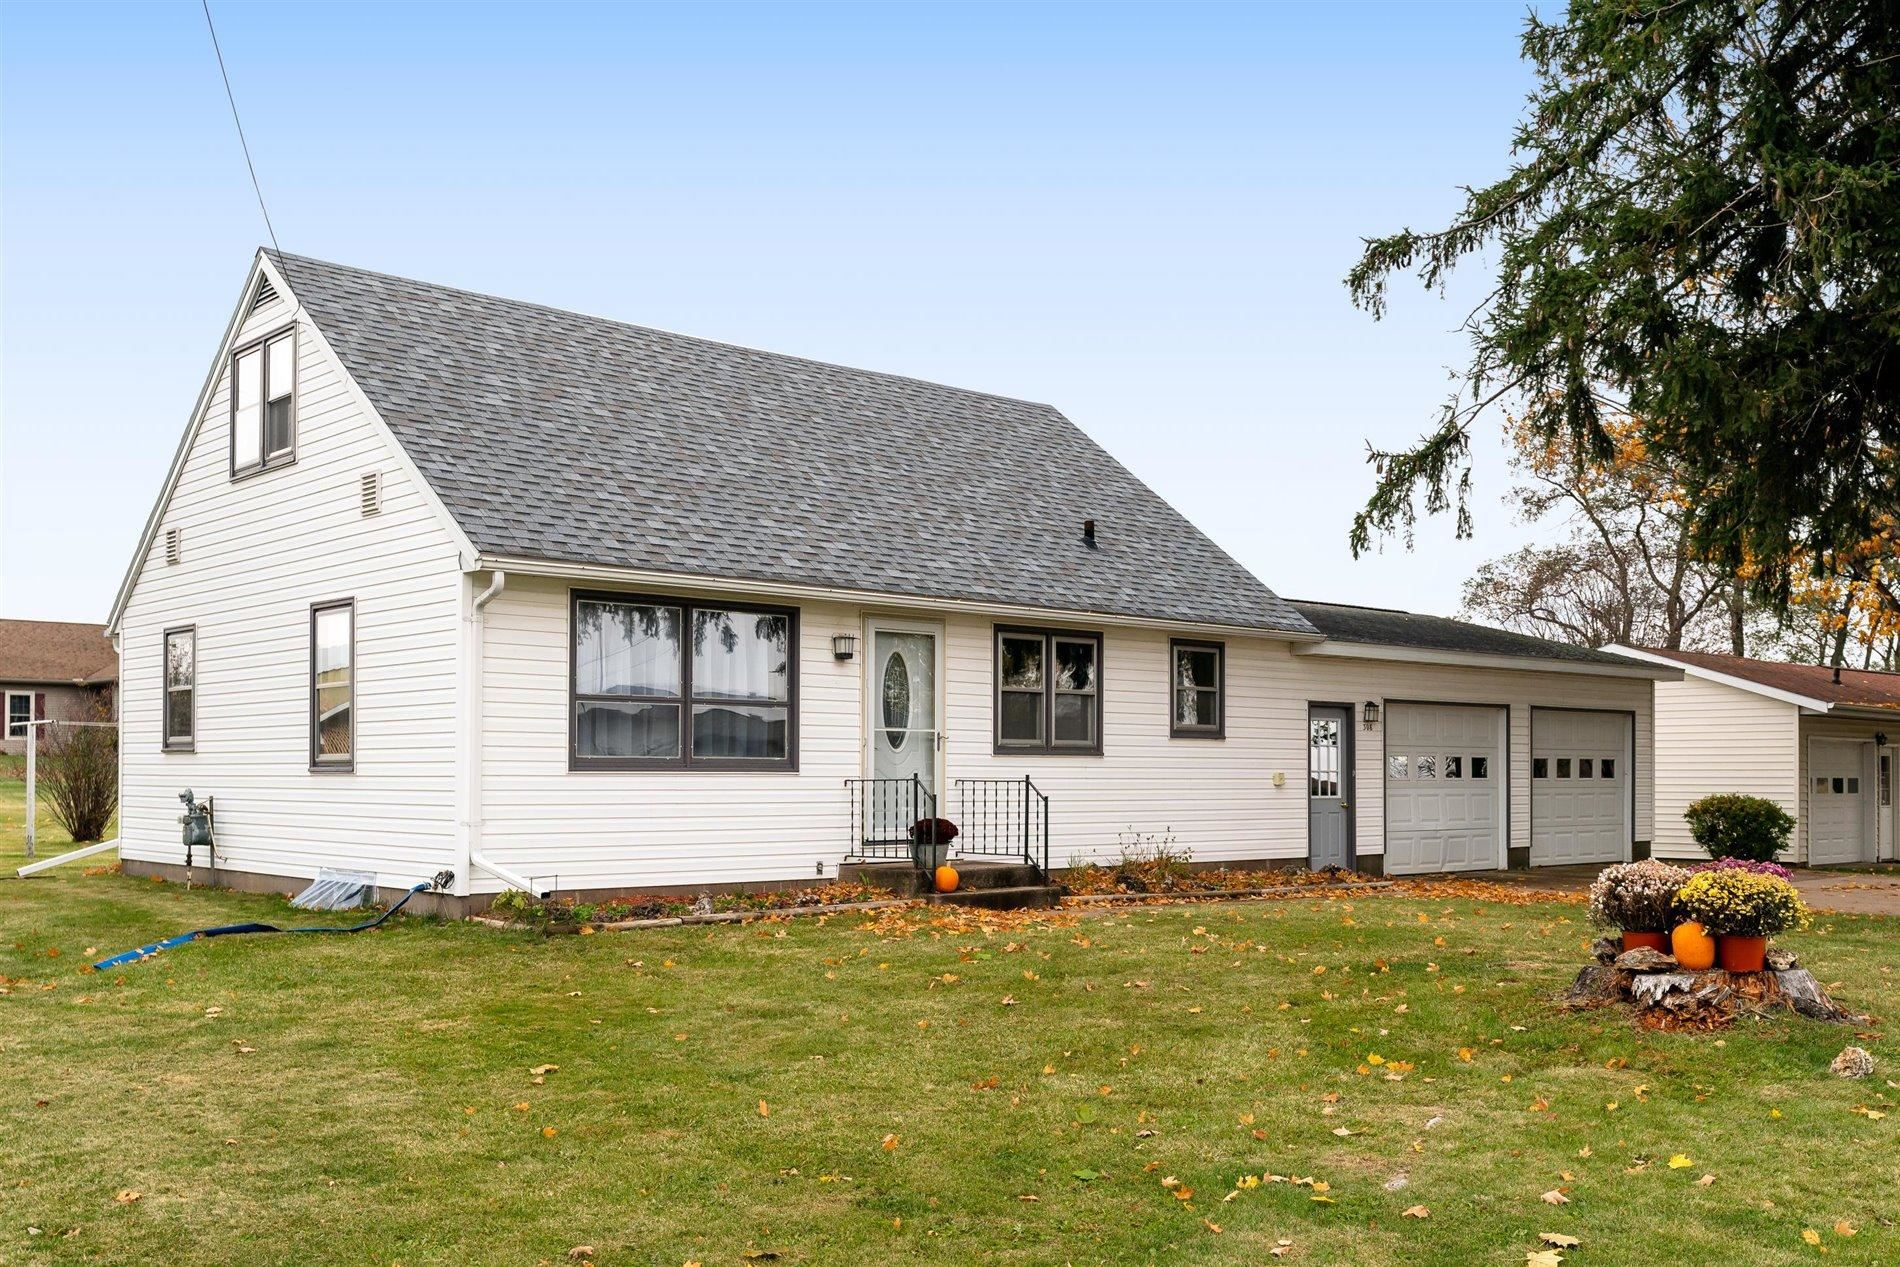 308 E Park St, Westby, WI 54667 - MLS#: 1716119